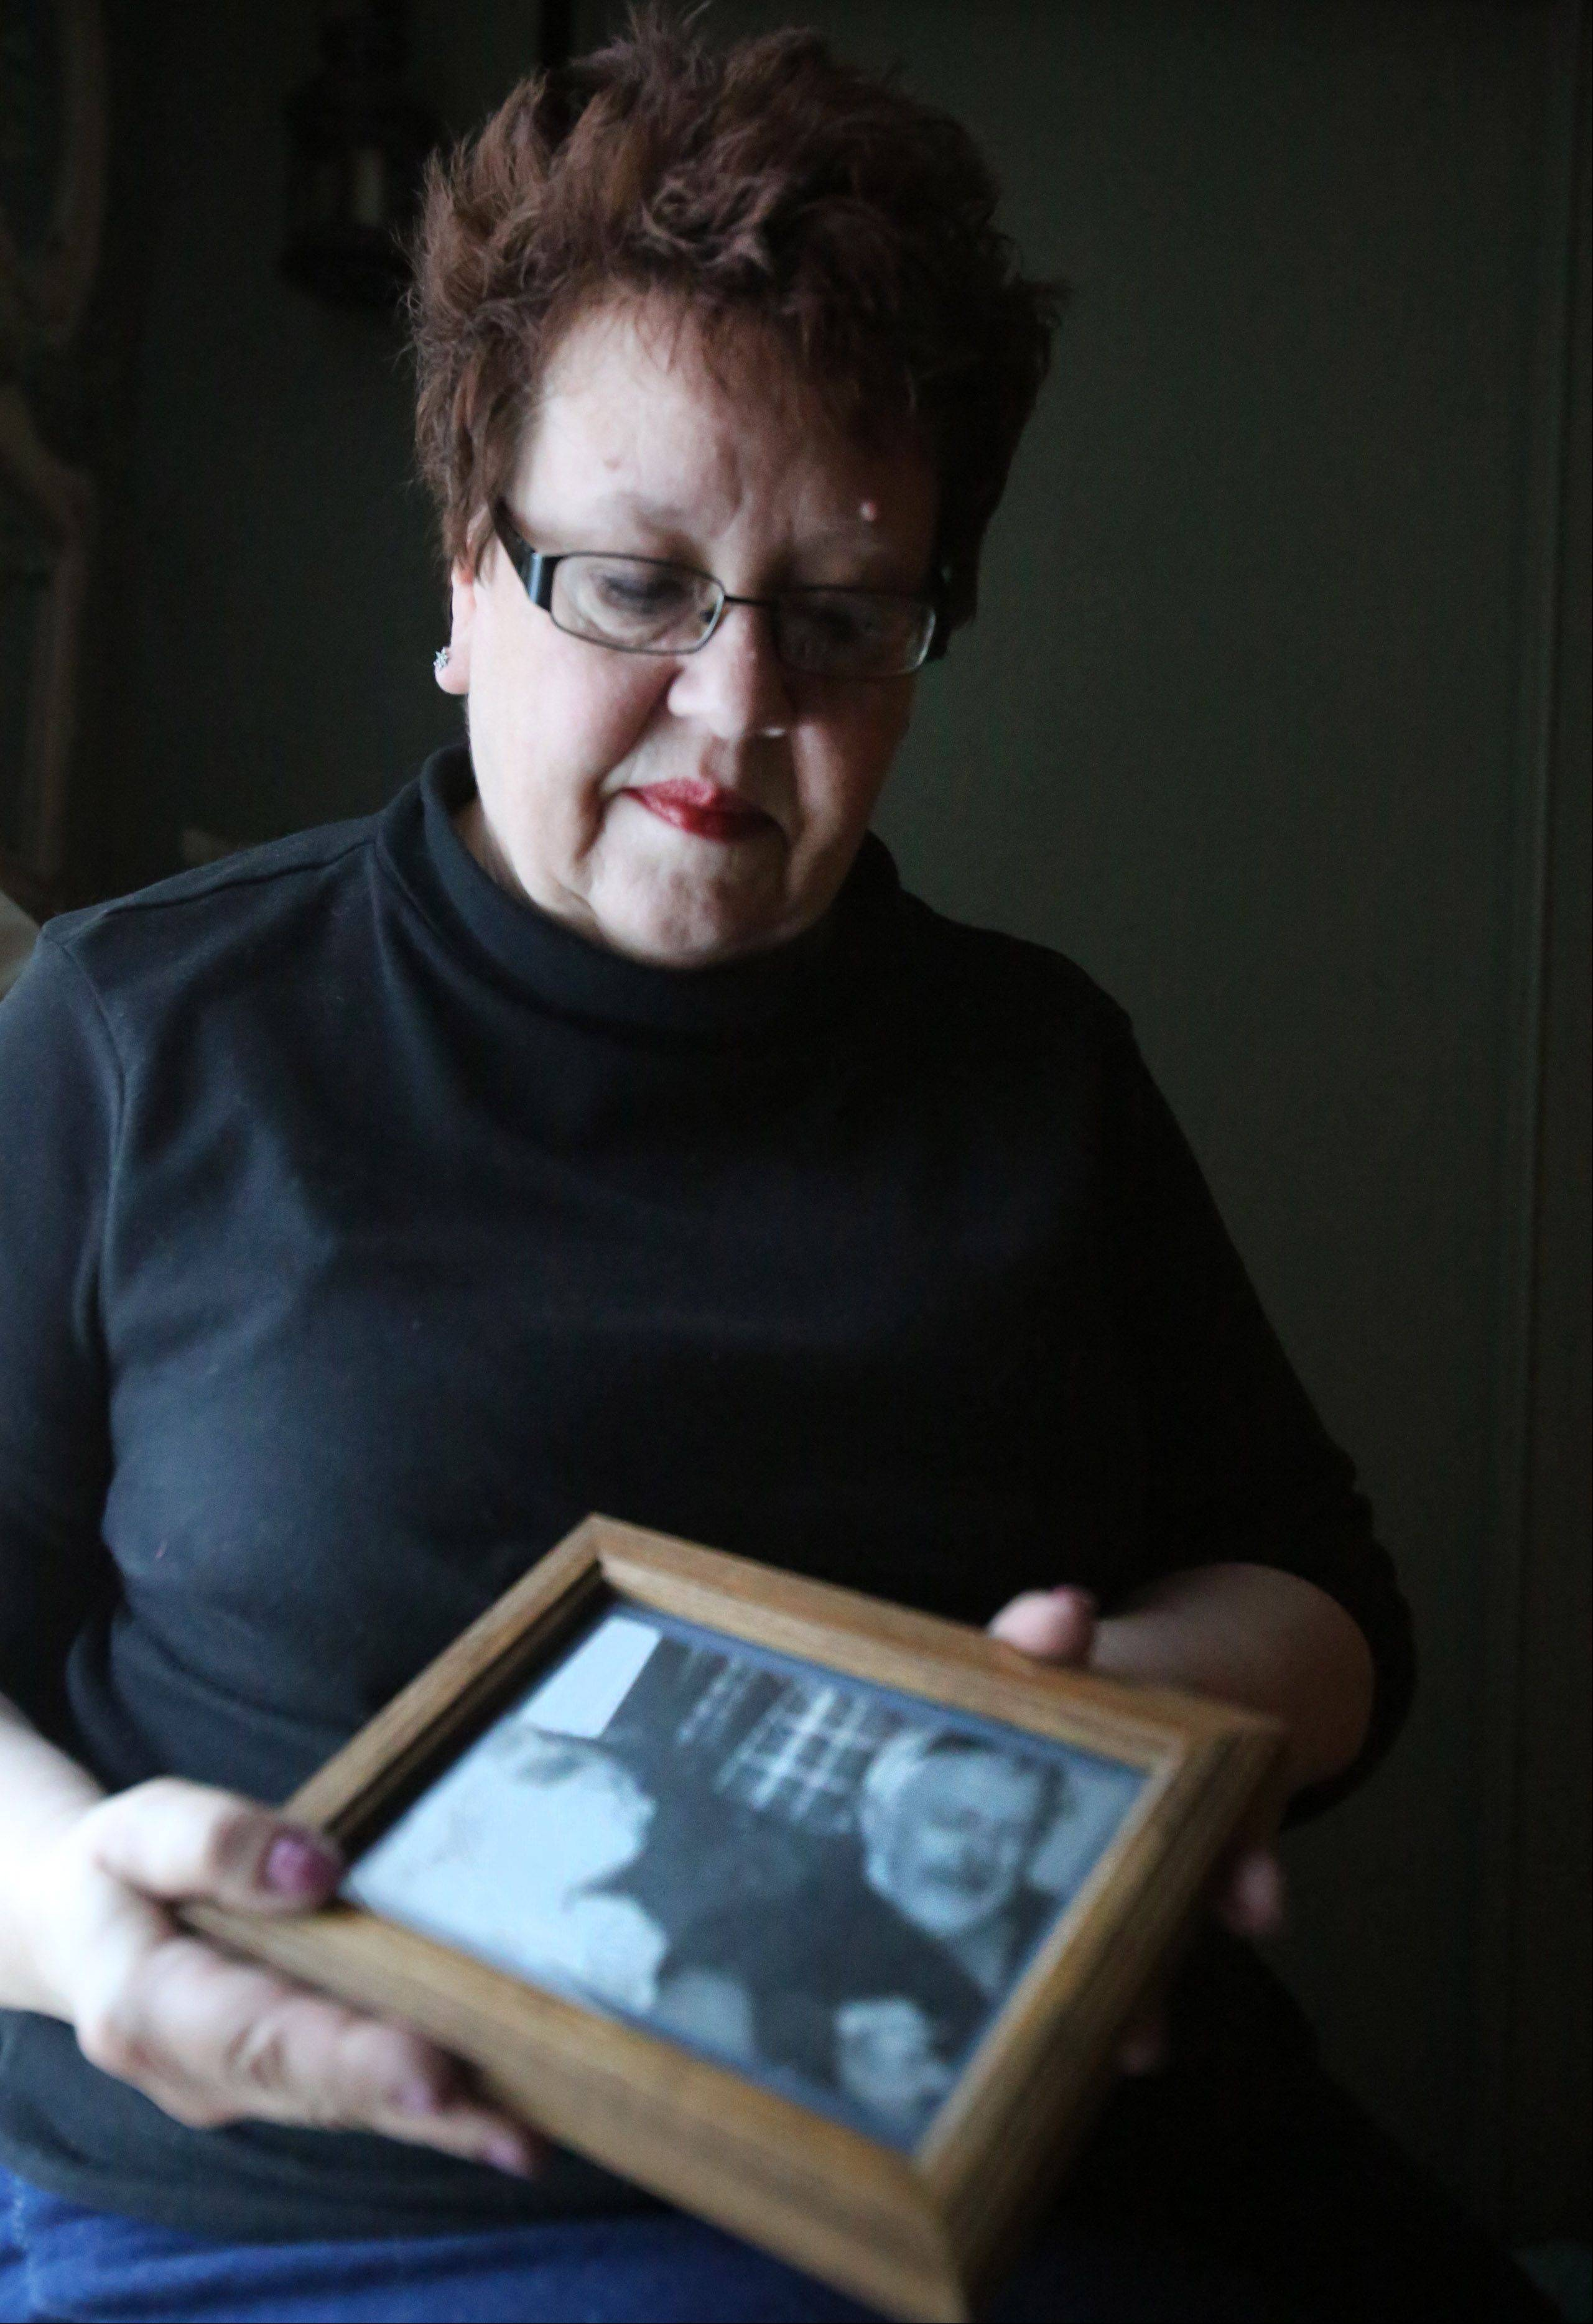 Mary Swieca holds a photograph of her husband, Joseph, who was killed when he was struck by a car in December near his home in Elk Grove Township.